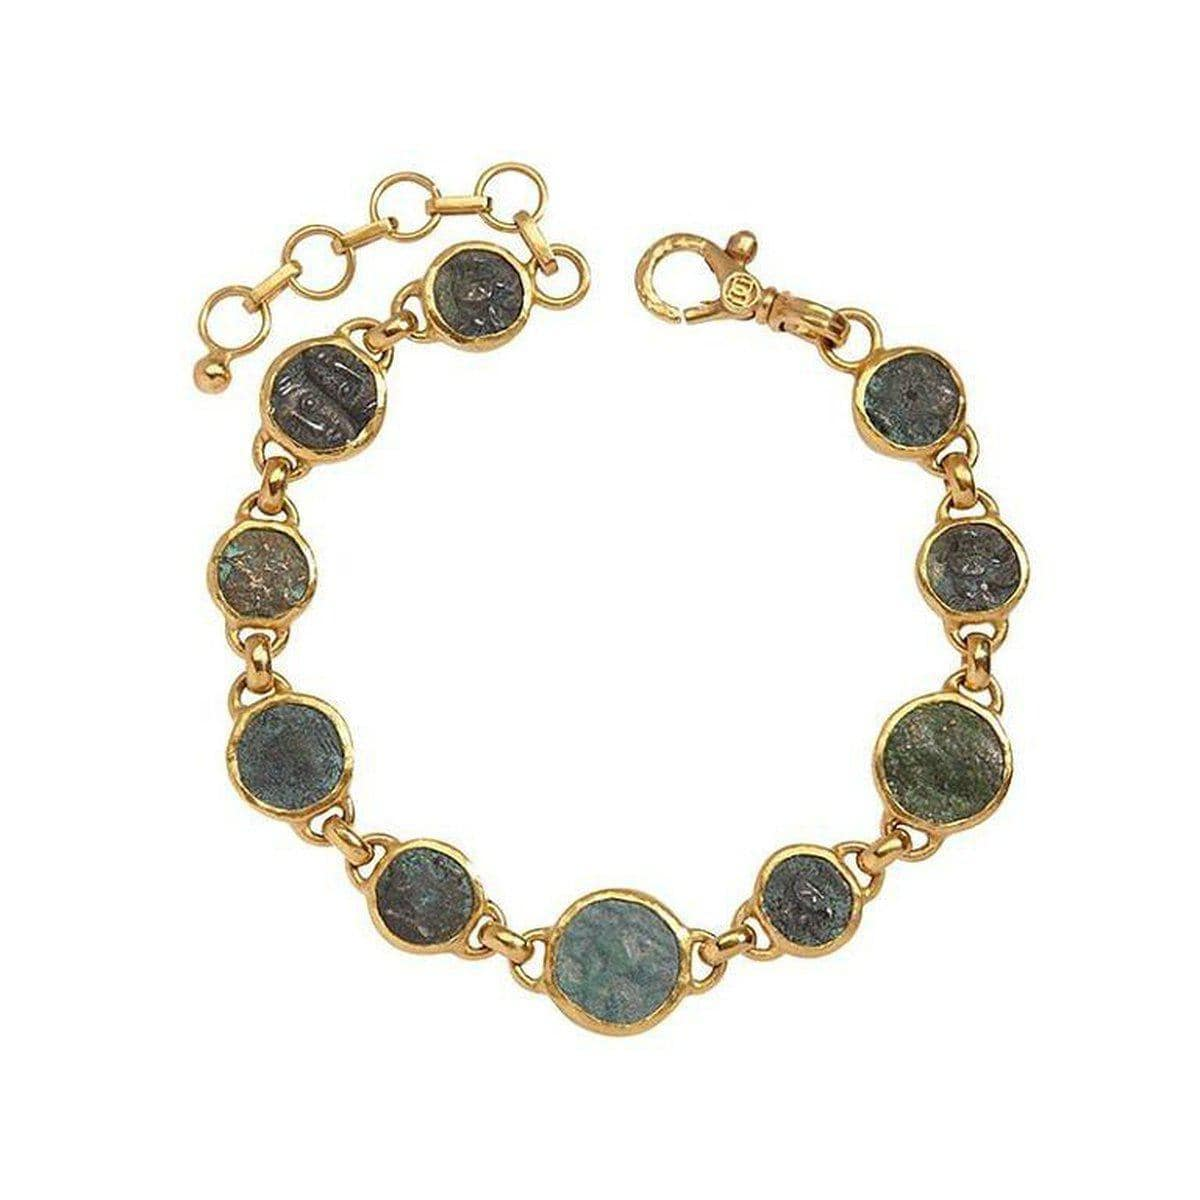 Antiquities 24K Gold Coin Bracelet - B-U23885-CN-GURHAN-Renee Taylor Gallery